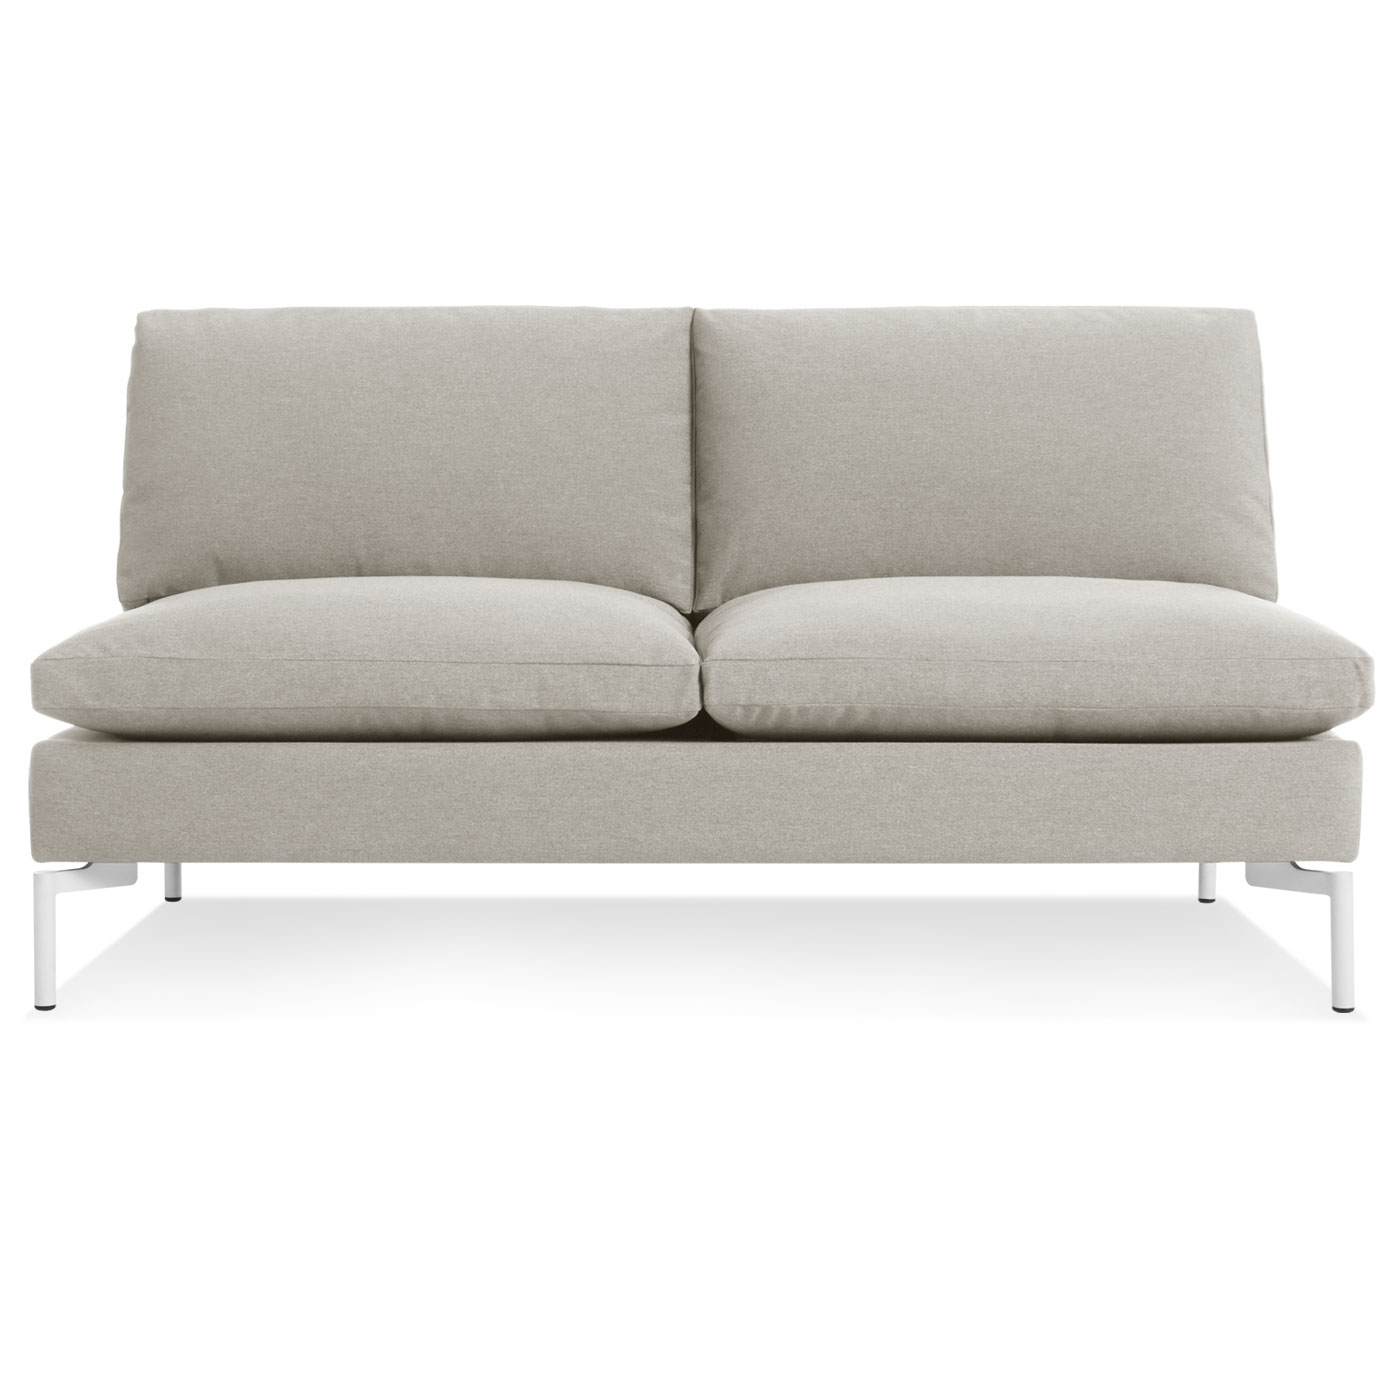 mesmerizing armless settee white front view for living room